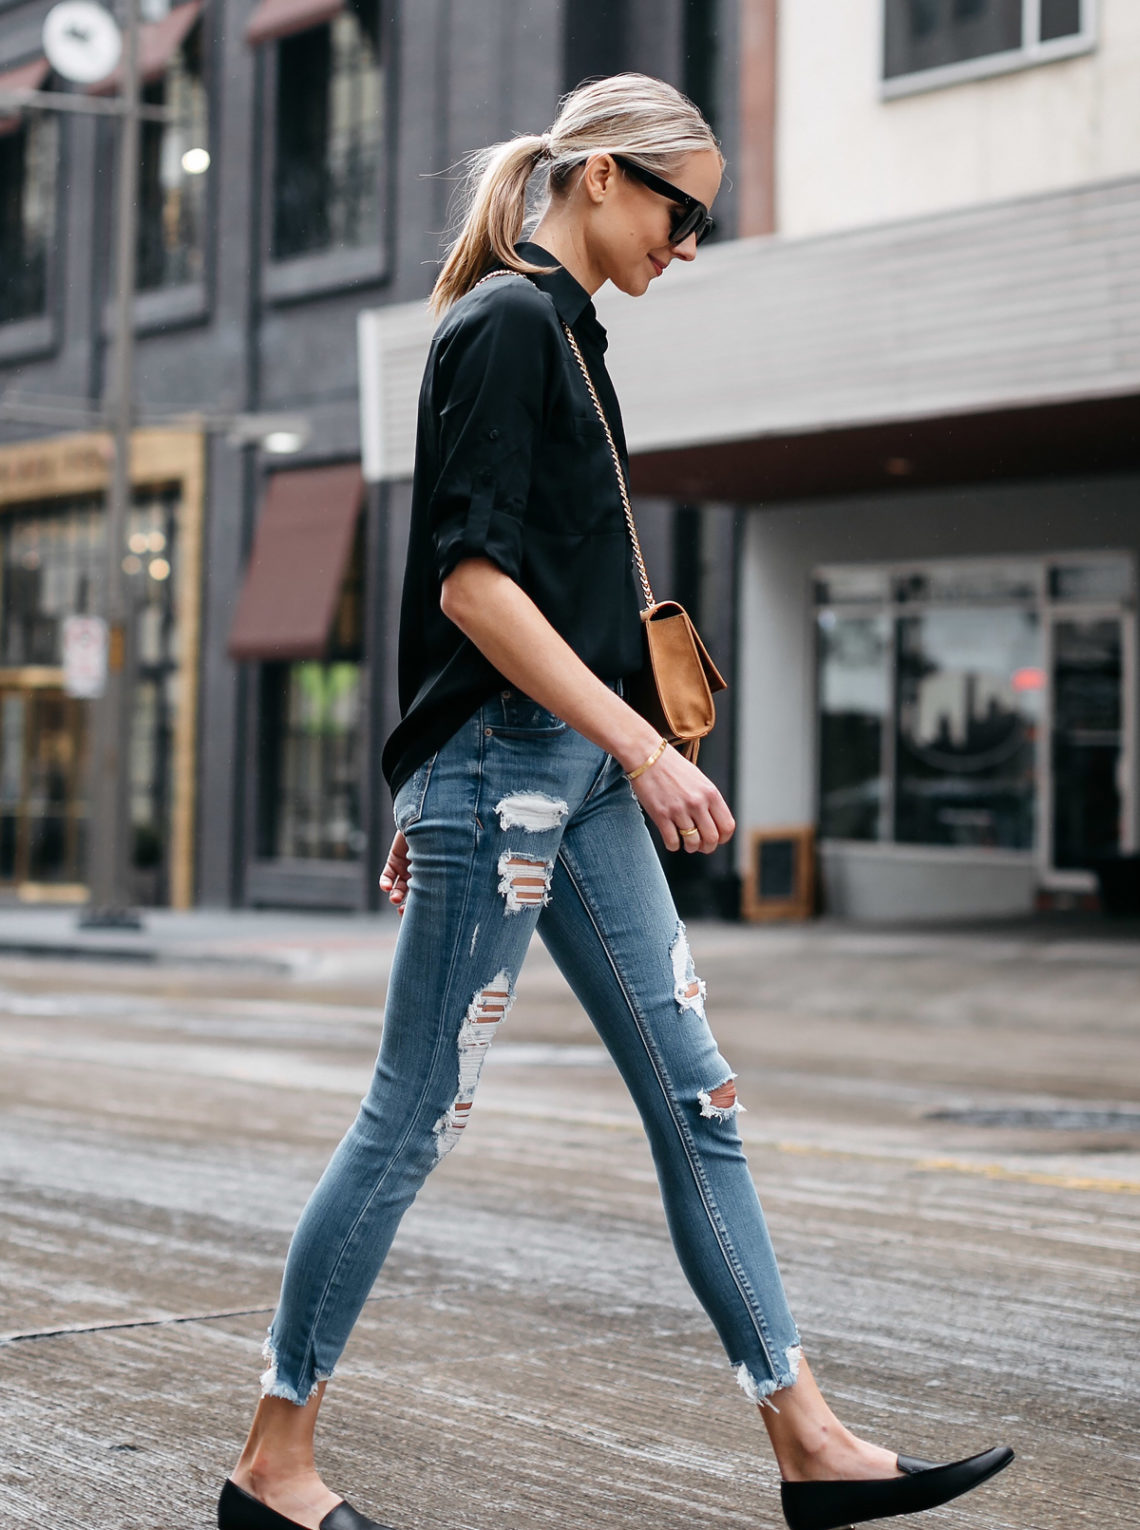 Blonde Woman Wearing Express Black Equipment Shirt Denim Ripped Skinny Jeans Black Loafers Fashion Jackson Dallas Blogger Fashion Blogger Street Style